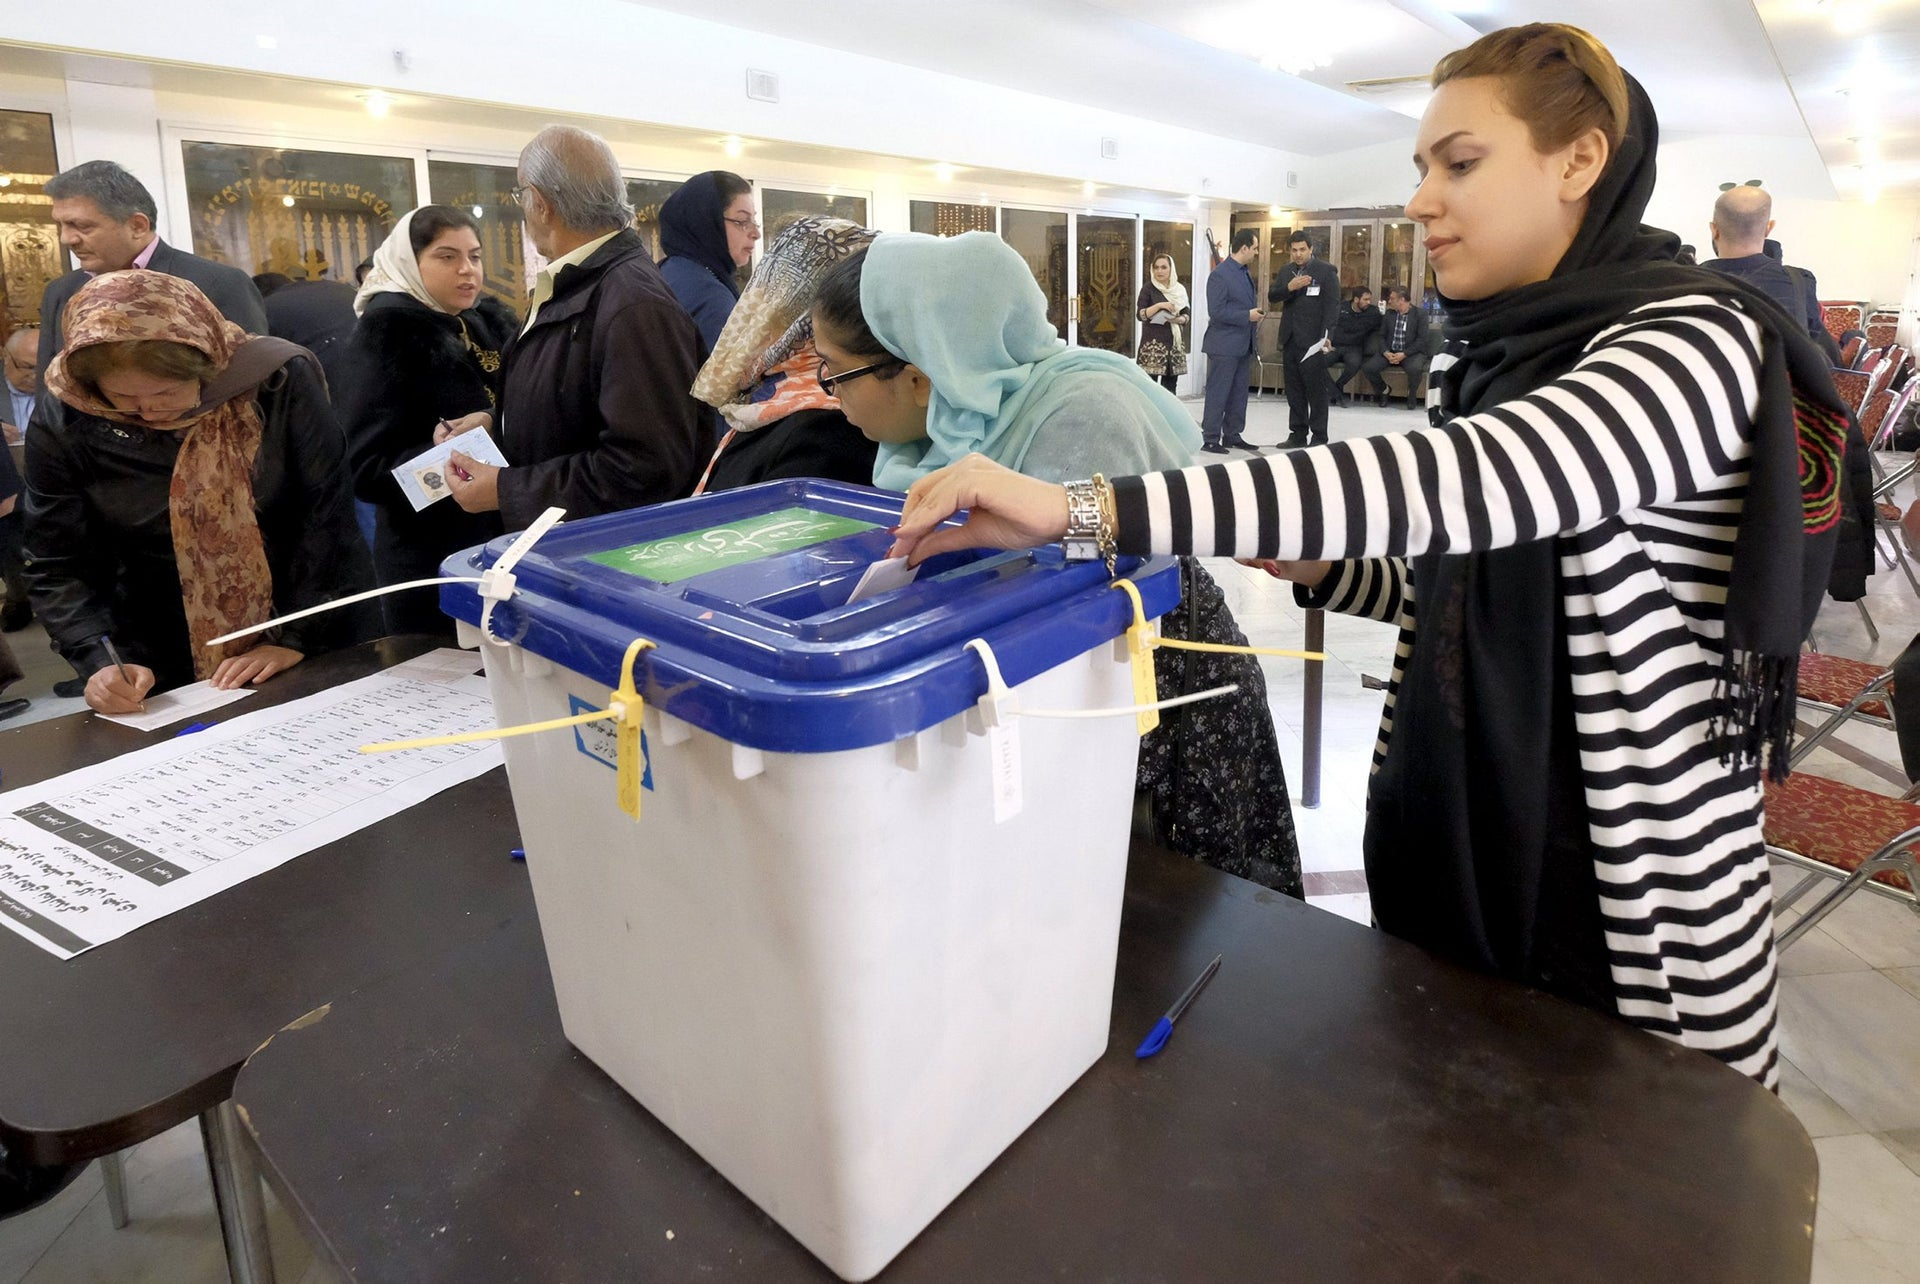 An Iranian Jewish woman casts her ballot at a synagogue, used as a polling station, during elections for the parliament and Assembly of Experts, which has the power to appoint and dismiss the supreme leader, in Tehran February 26, 2016.